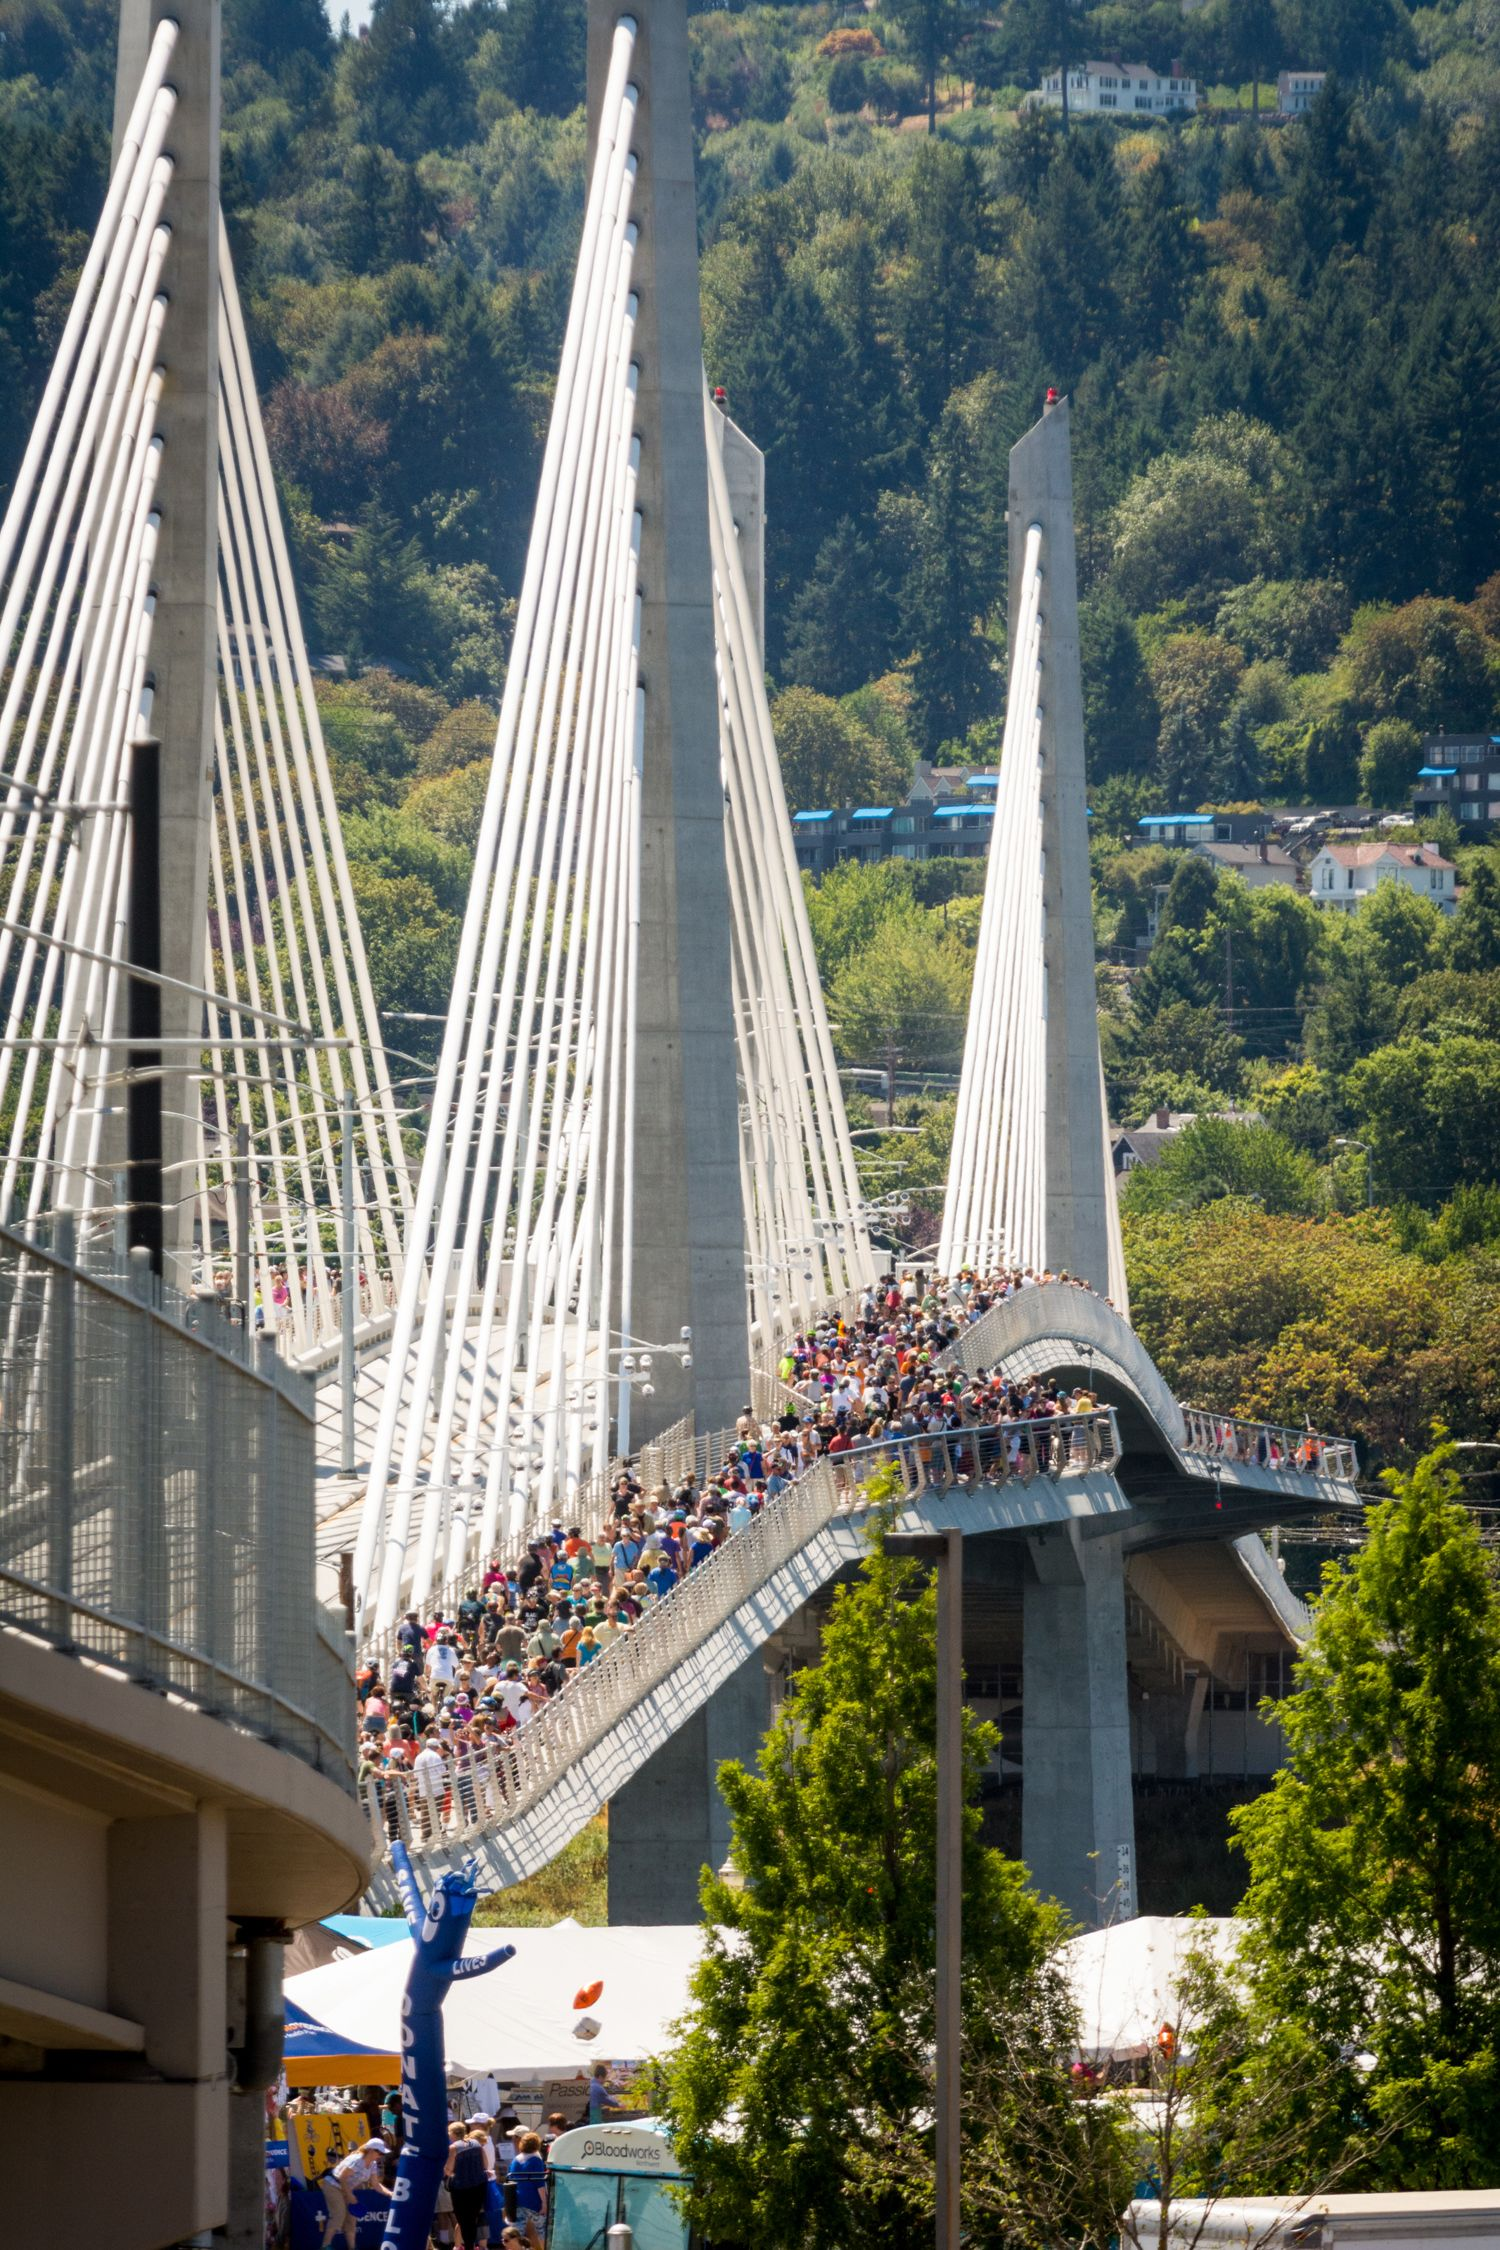 <p>The $135 million, 1,720-foot-long cable-stayed structure is owned by TriMet, the region's public transit agency. TriMet needed a new to connect its $1.49 billion Orange Line light rail extension across the river, but the area just south of many of Portland's Willamette crossings lacked the existing road infrastructure to accommodate a new vehicle-heavy bridge. Thus, the idea of a big no-car bridge was born. Because it doesn't need to accommodate four or six lanes of vehicle traffic, Tilikum Crossing offers up a completely different look. It comes in at a narrow 75.5 feet wide, and that includes two 14-foot-wide bicycle and pedestrian paths.</p>